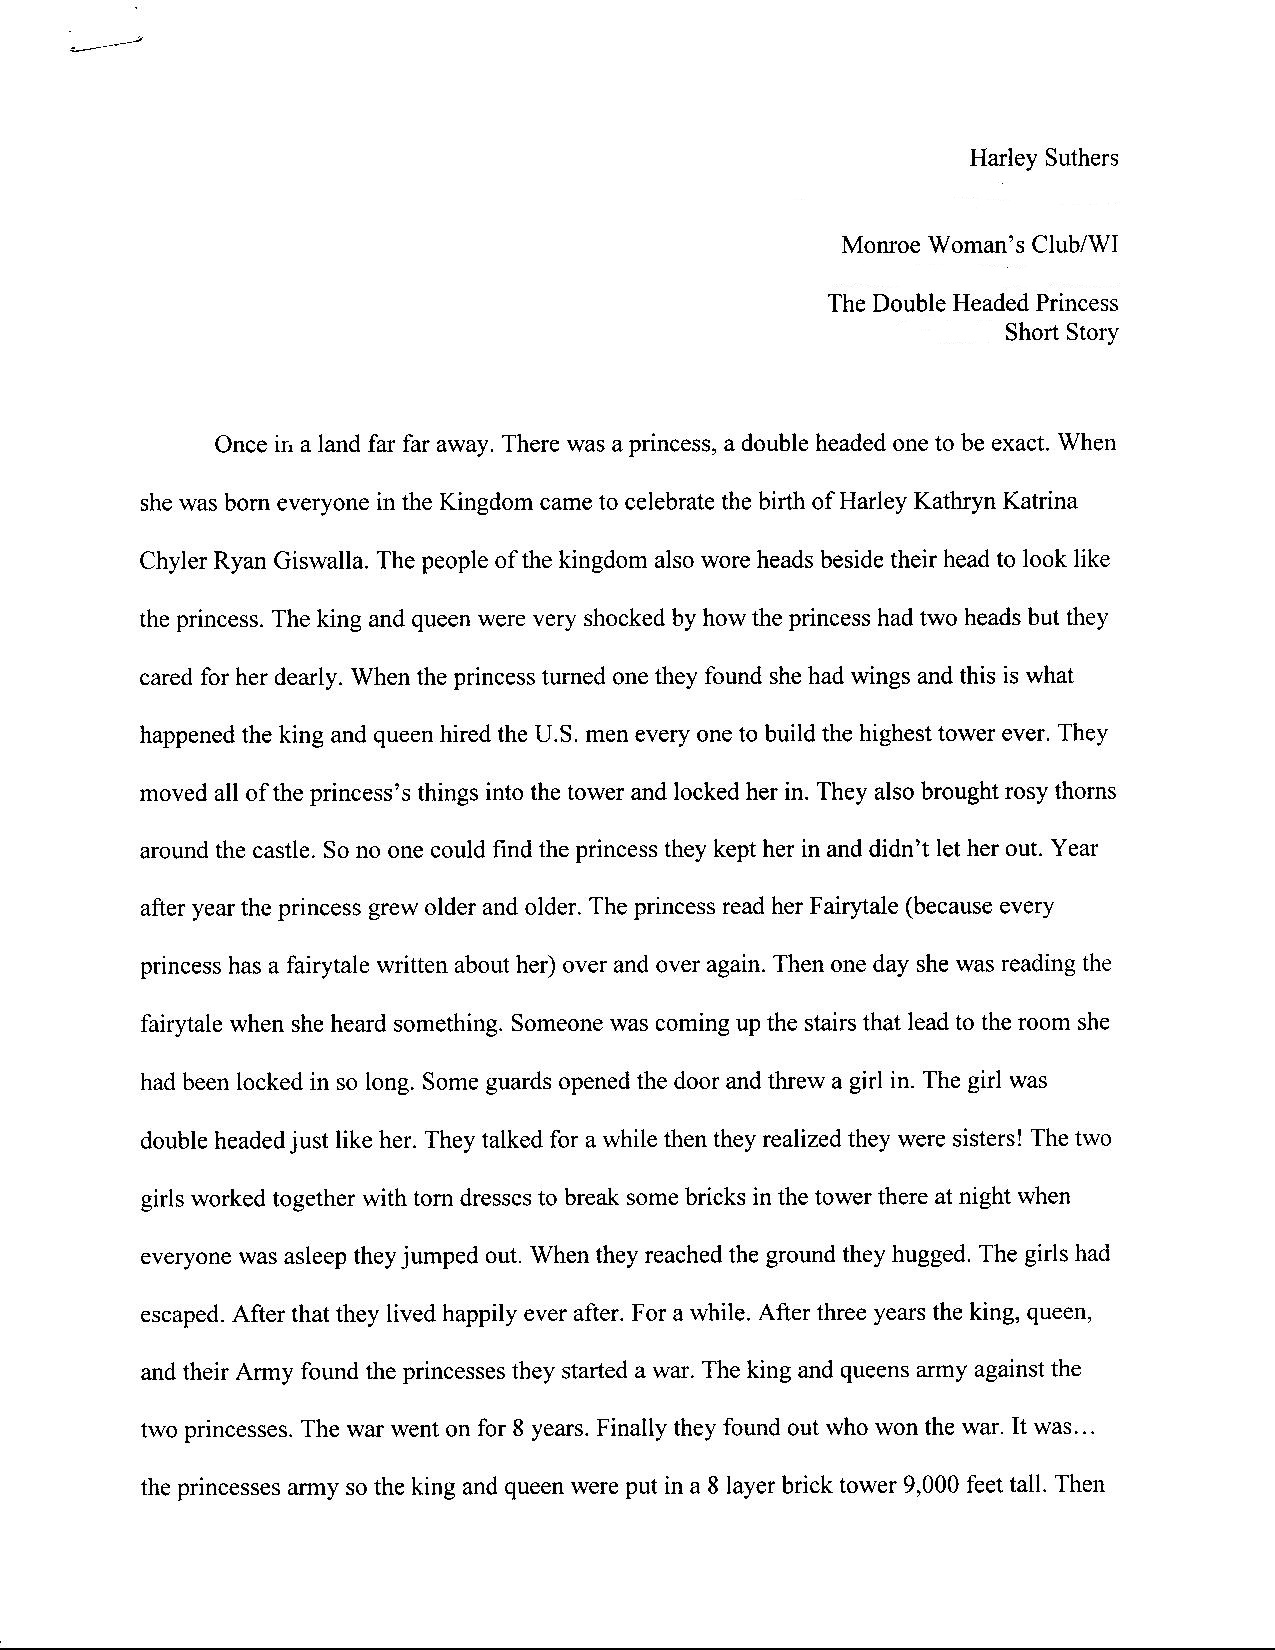 Youth short story and poetry gfwc wisconsin the double headed princess by harley suthers page 1 biocorpaavc Choice Image